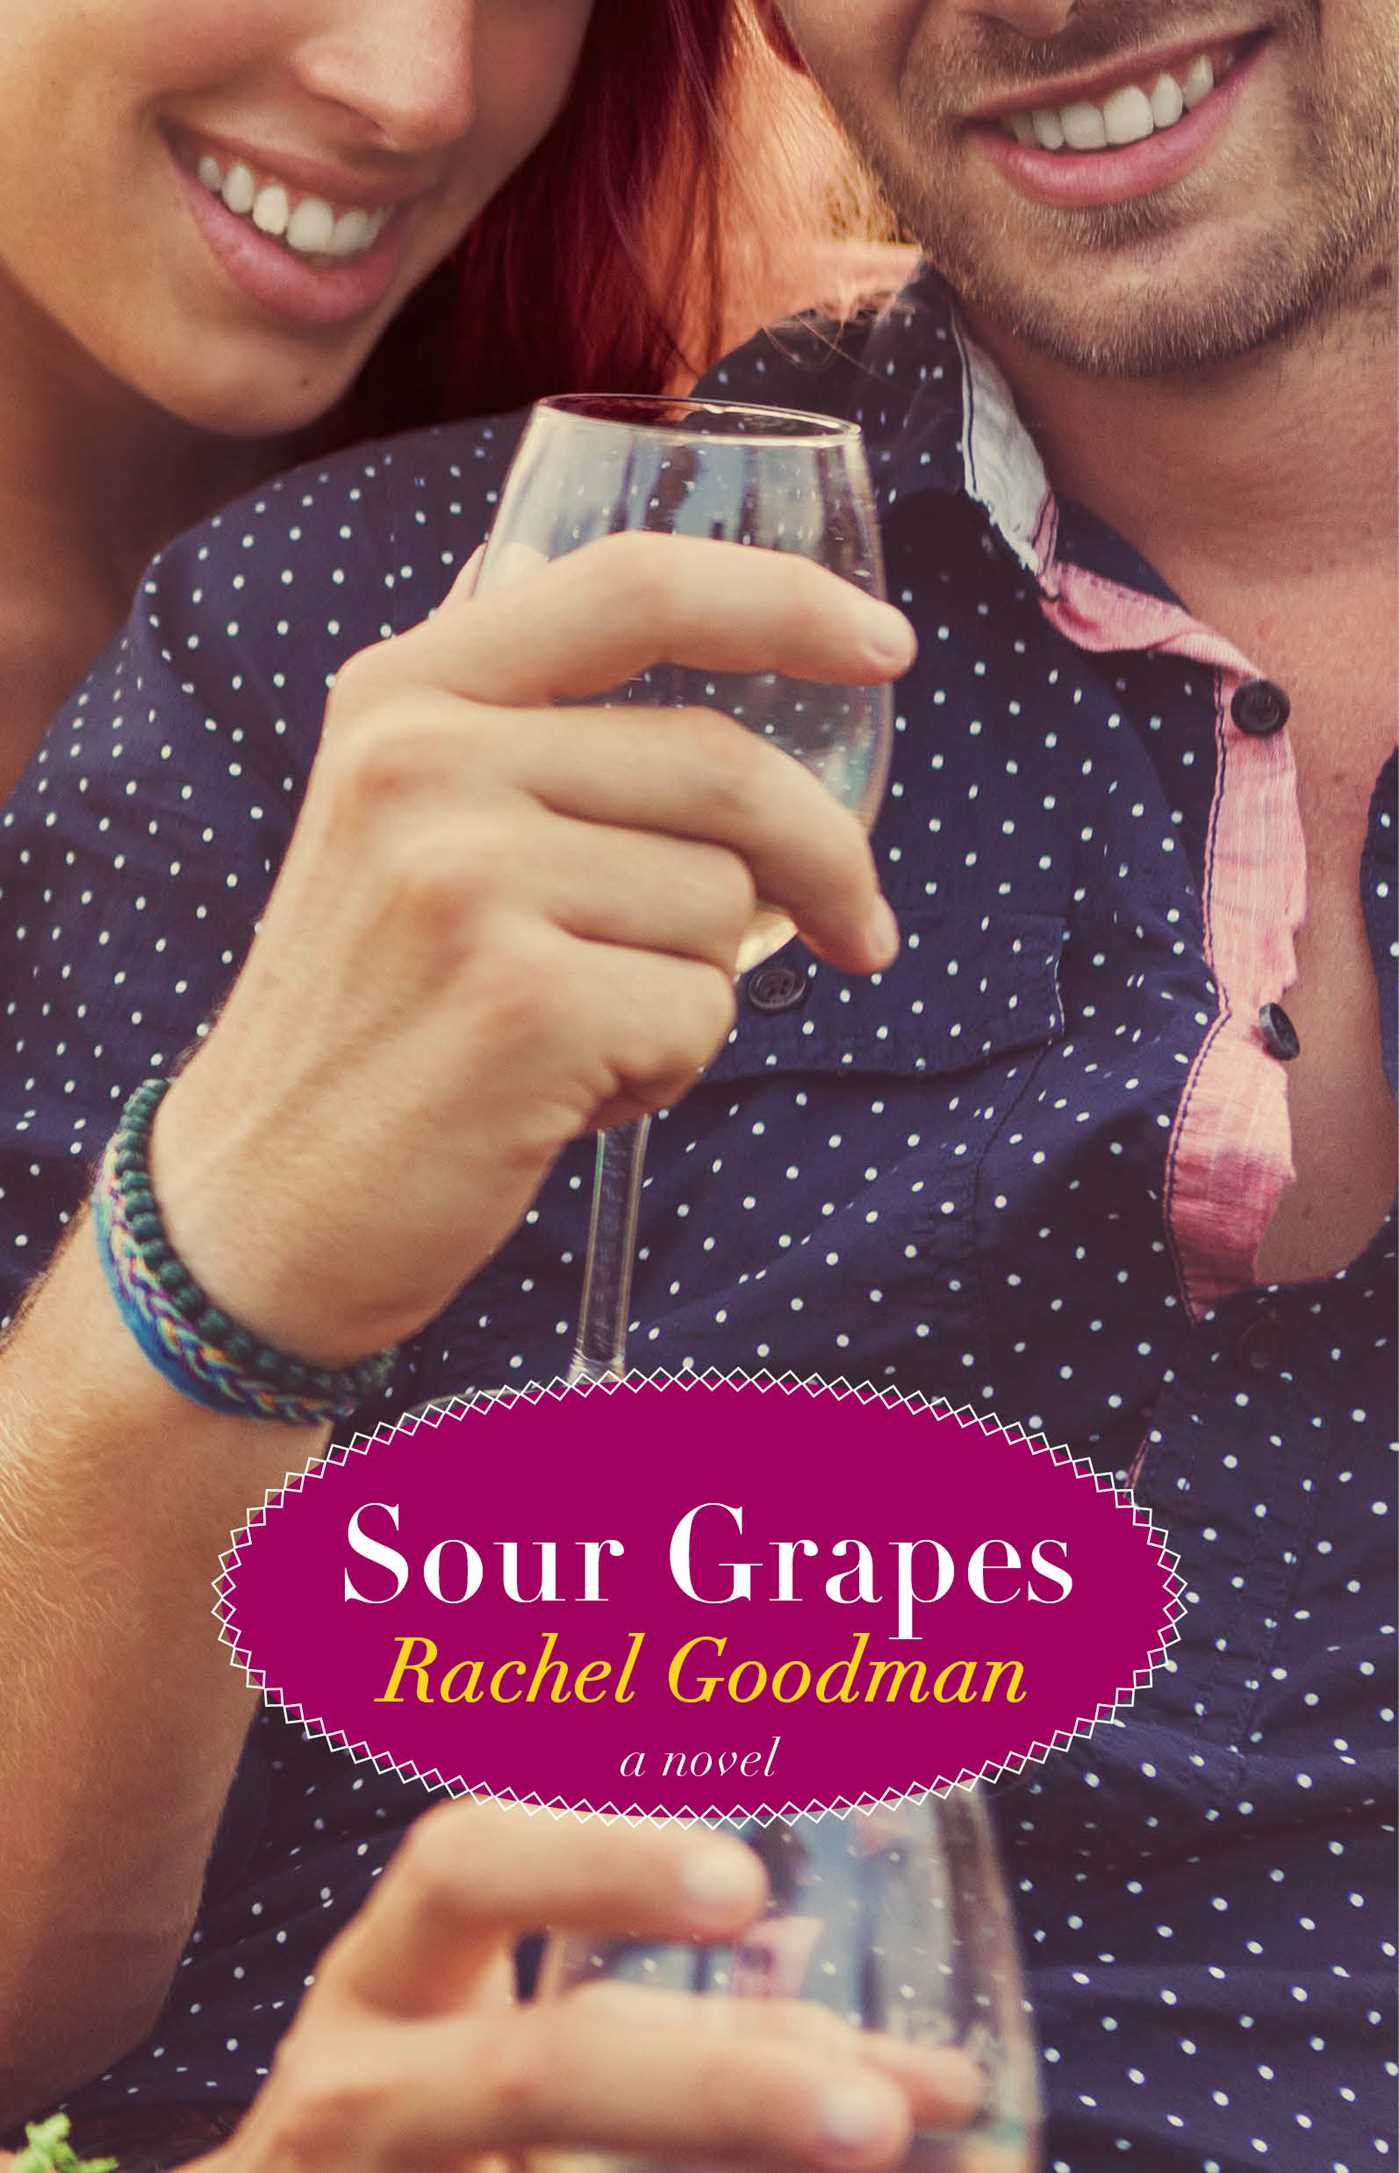 Sour Grapes book cover